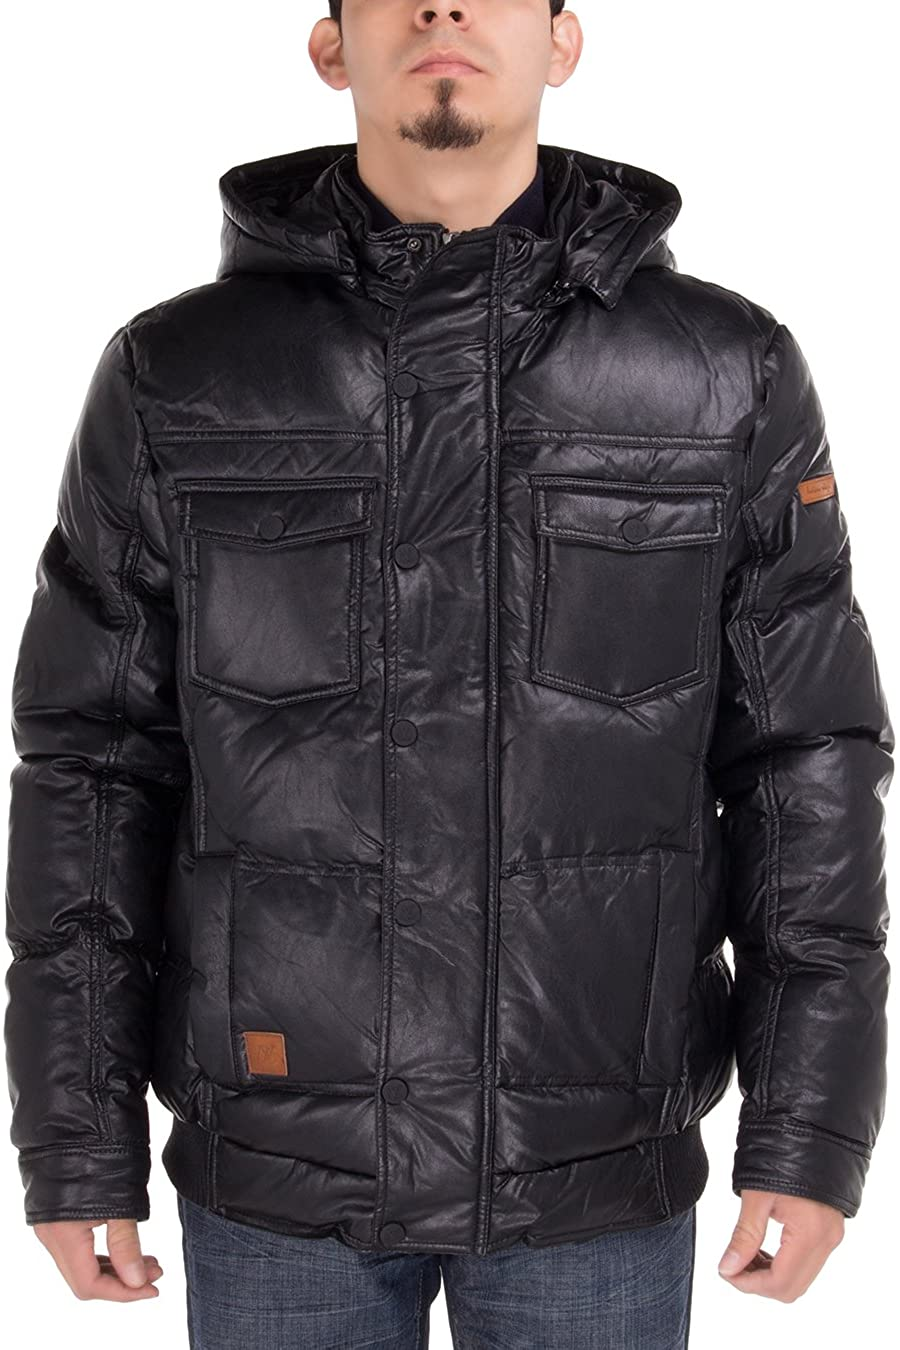 Luciano Natazzi Men's Puffer Coat Tec Removable Hooded Bomber Down Jacket